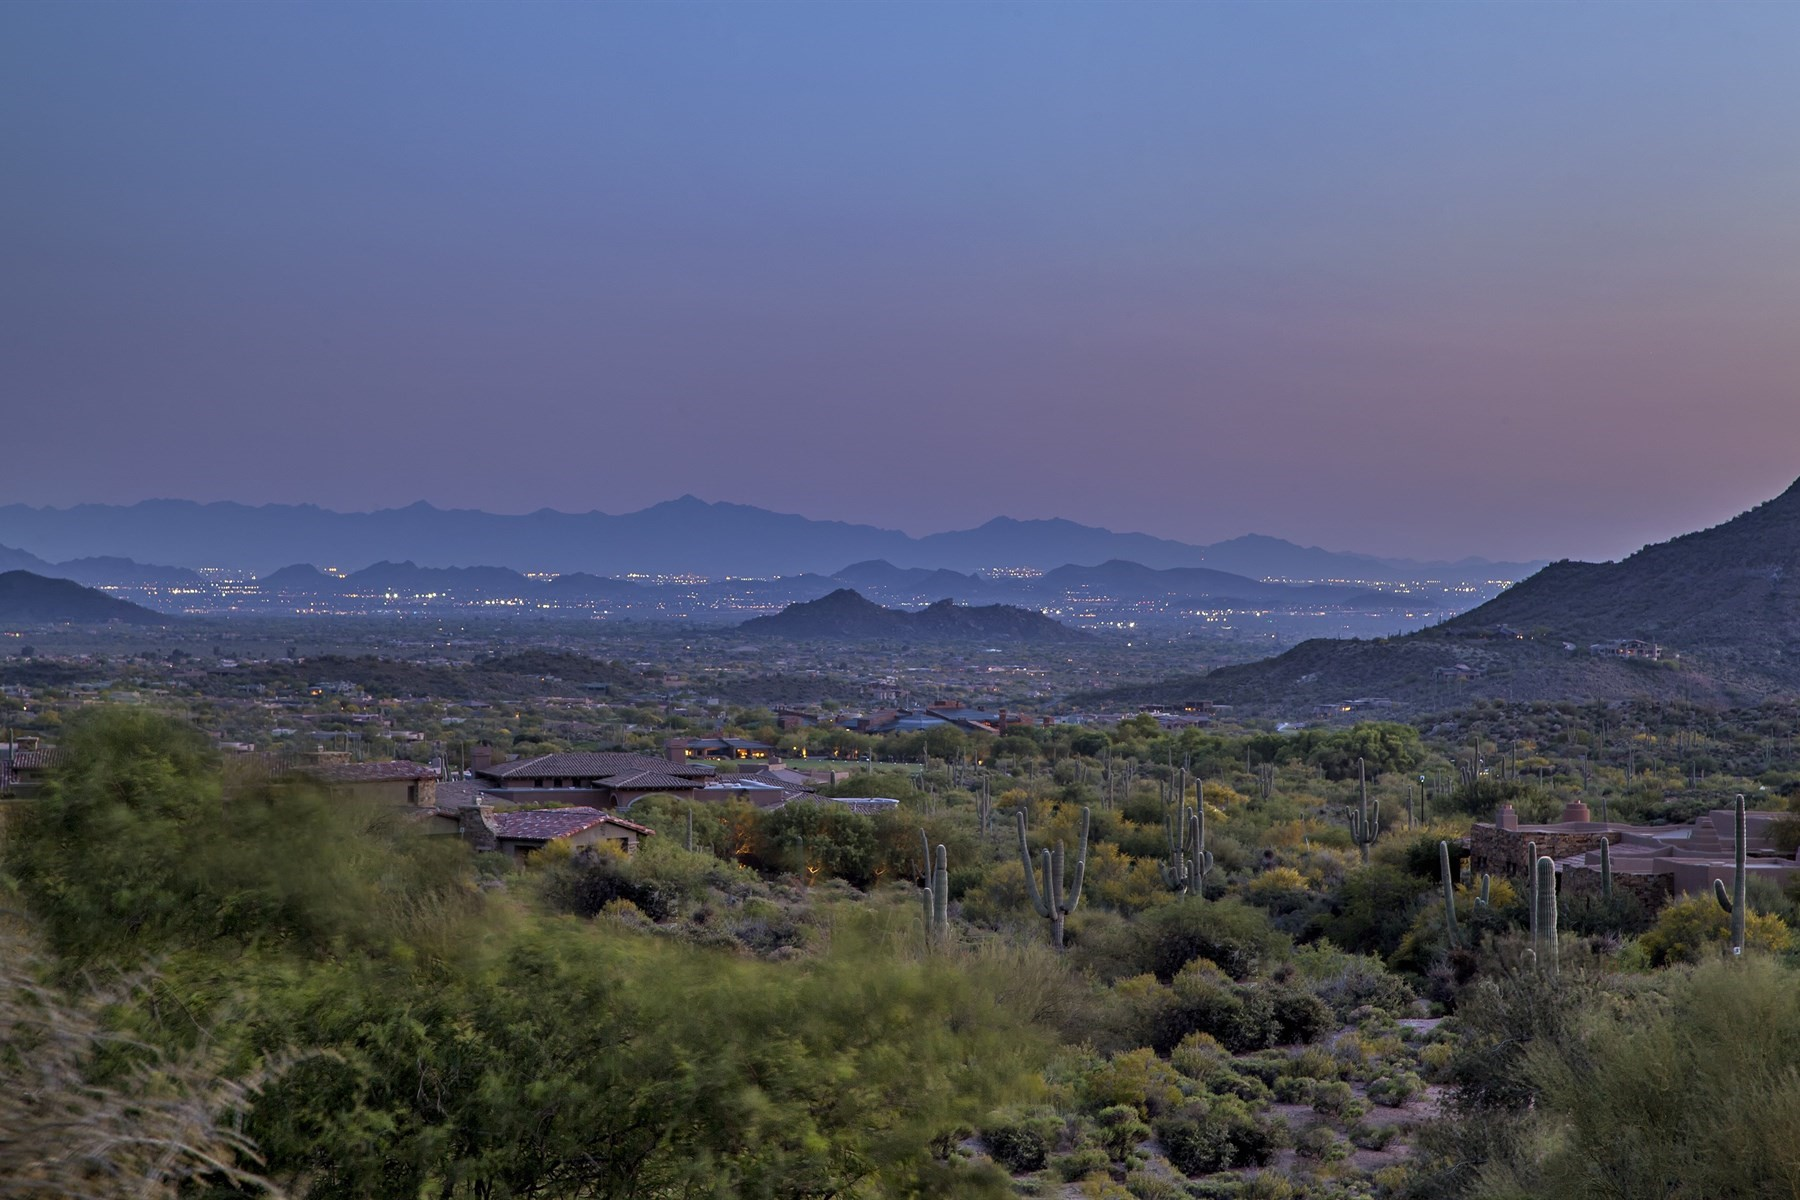 Land for Sale at Stellar lot that offers unbeatable views 42069 N 105th St #8, Scottsdale, Arizona, 85262 United States